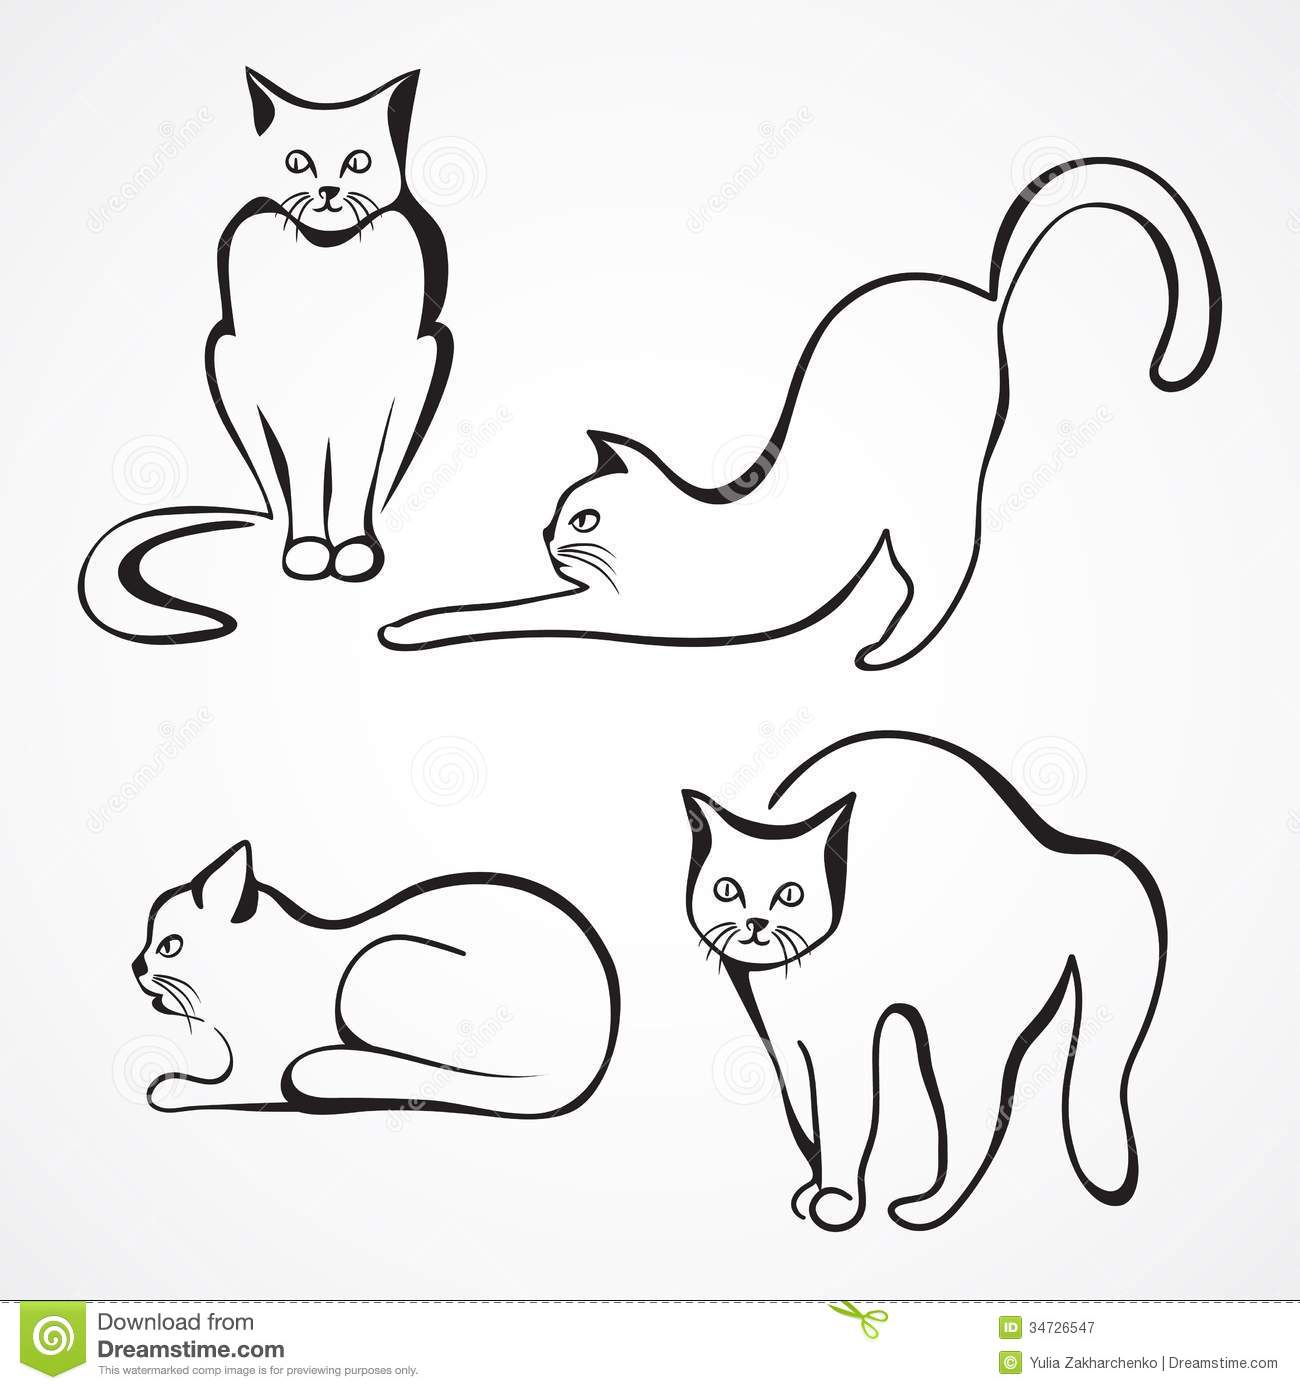 It is a graphic of Sassy Line Drawing Saut De Chat